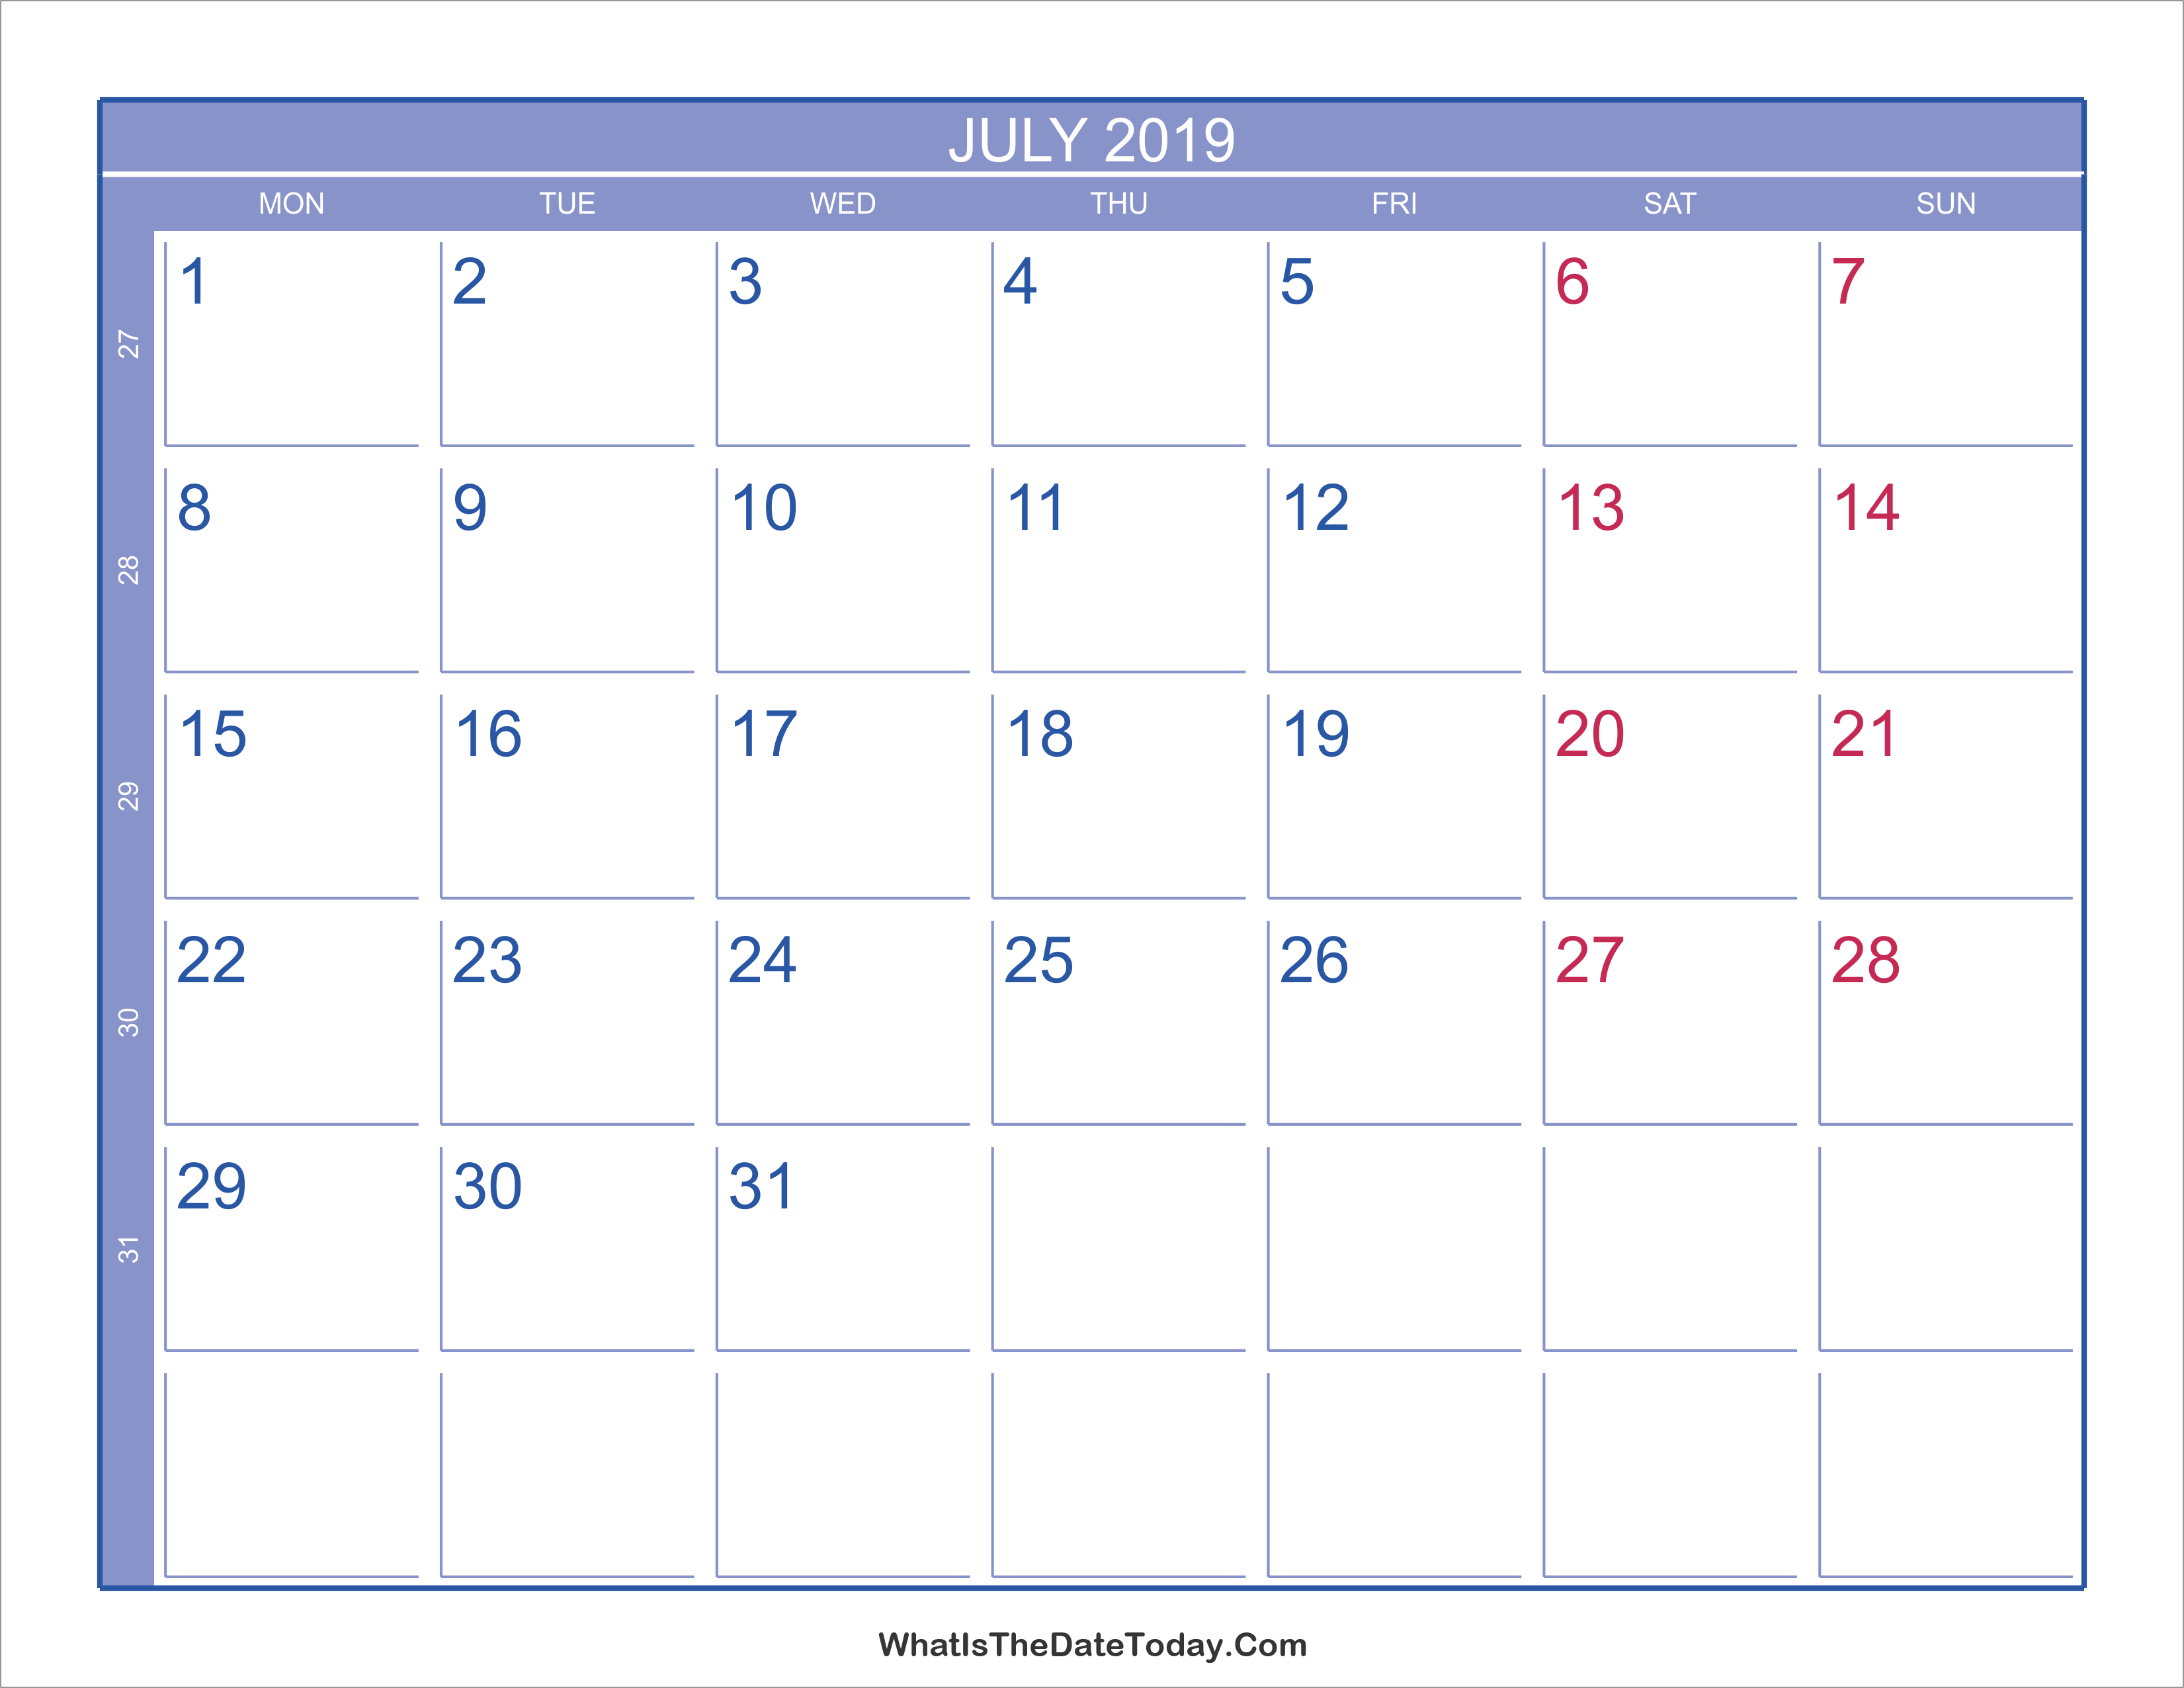 2019 july calendar with week numbers